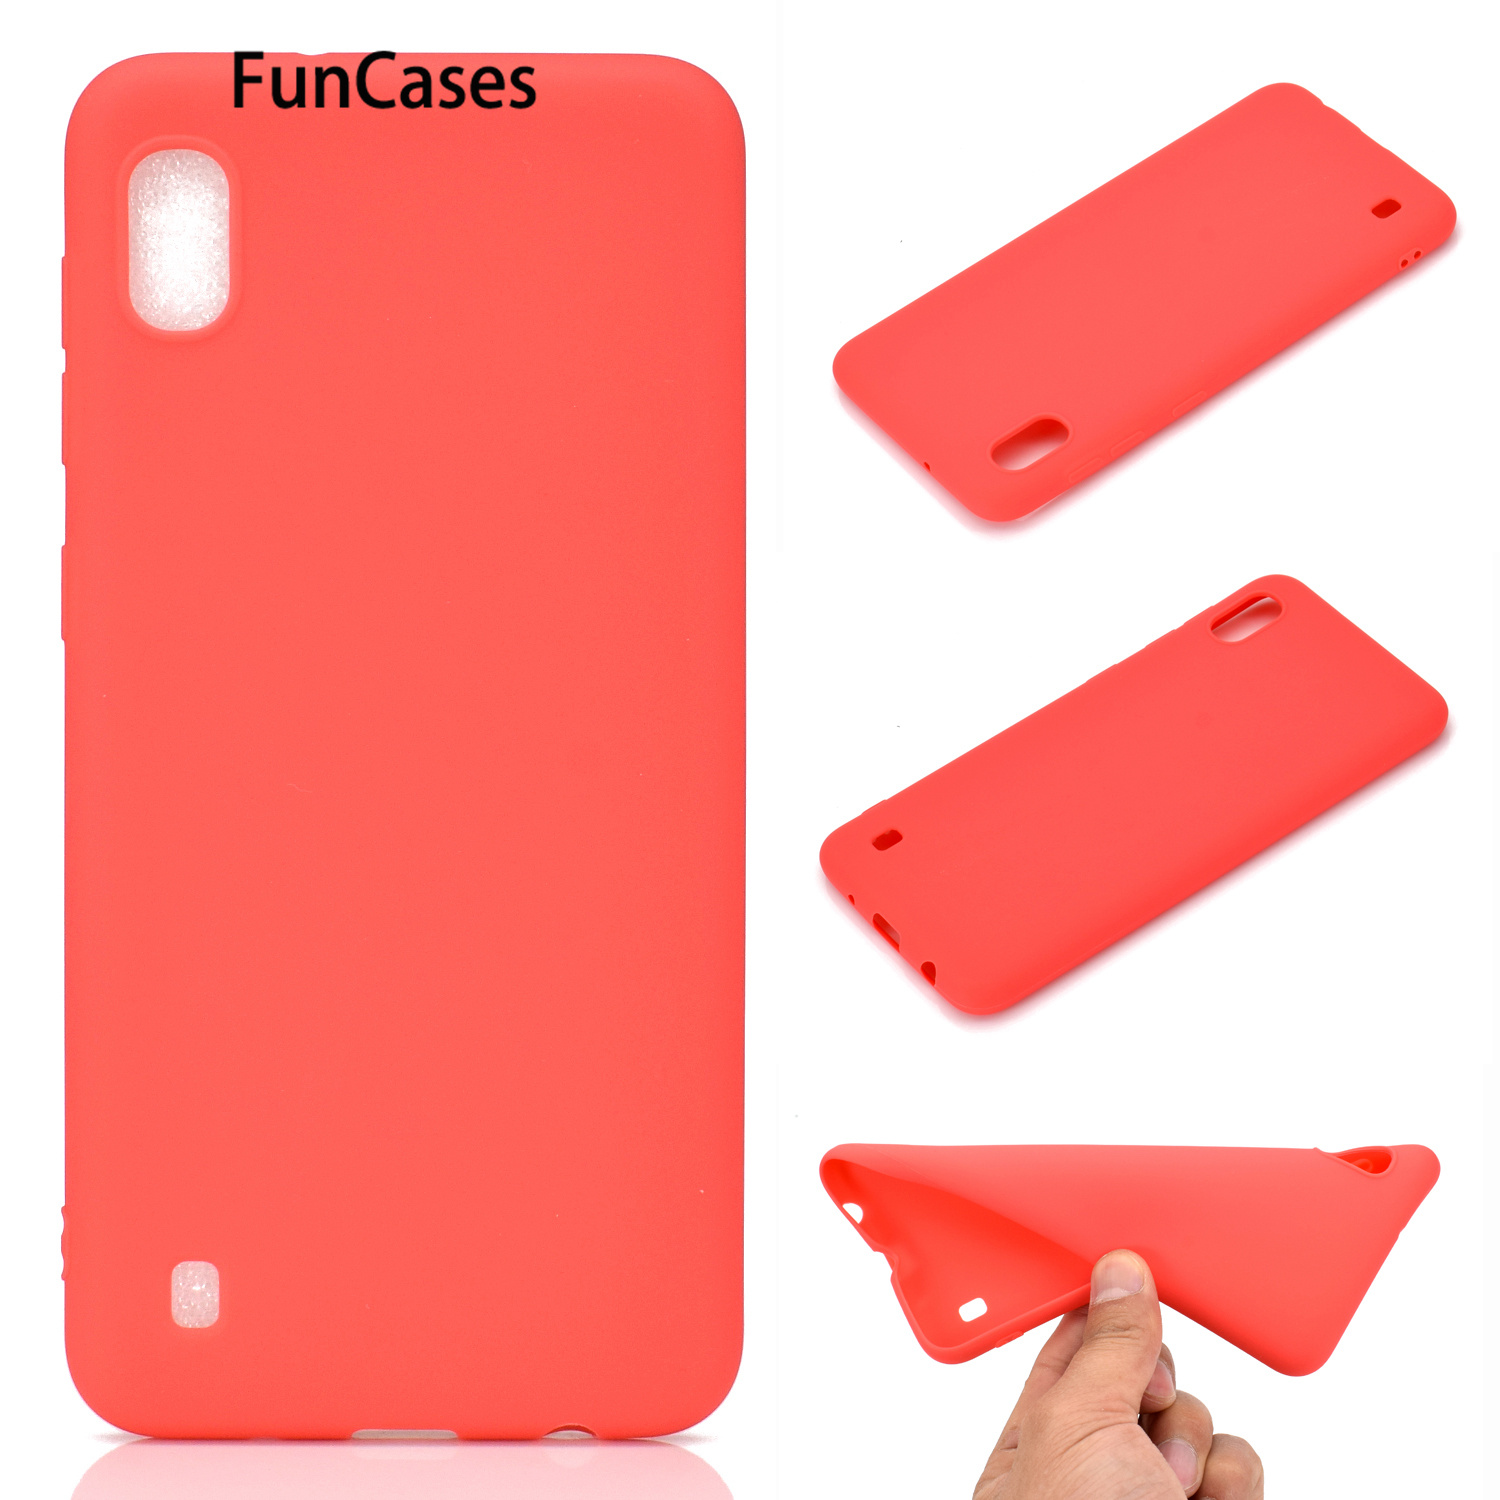 M10 Simple TPU Phone Cases For M20 M30 M40 <font><b>Samsung</b></font> A10 A20 A30 A40 <font><b>Samsung</b></font> A50 A60 A70 Galaxy <font><b>A80</b></font> A90 Soft Silicone <font><b>Cover</b></font> A70S image